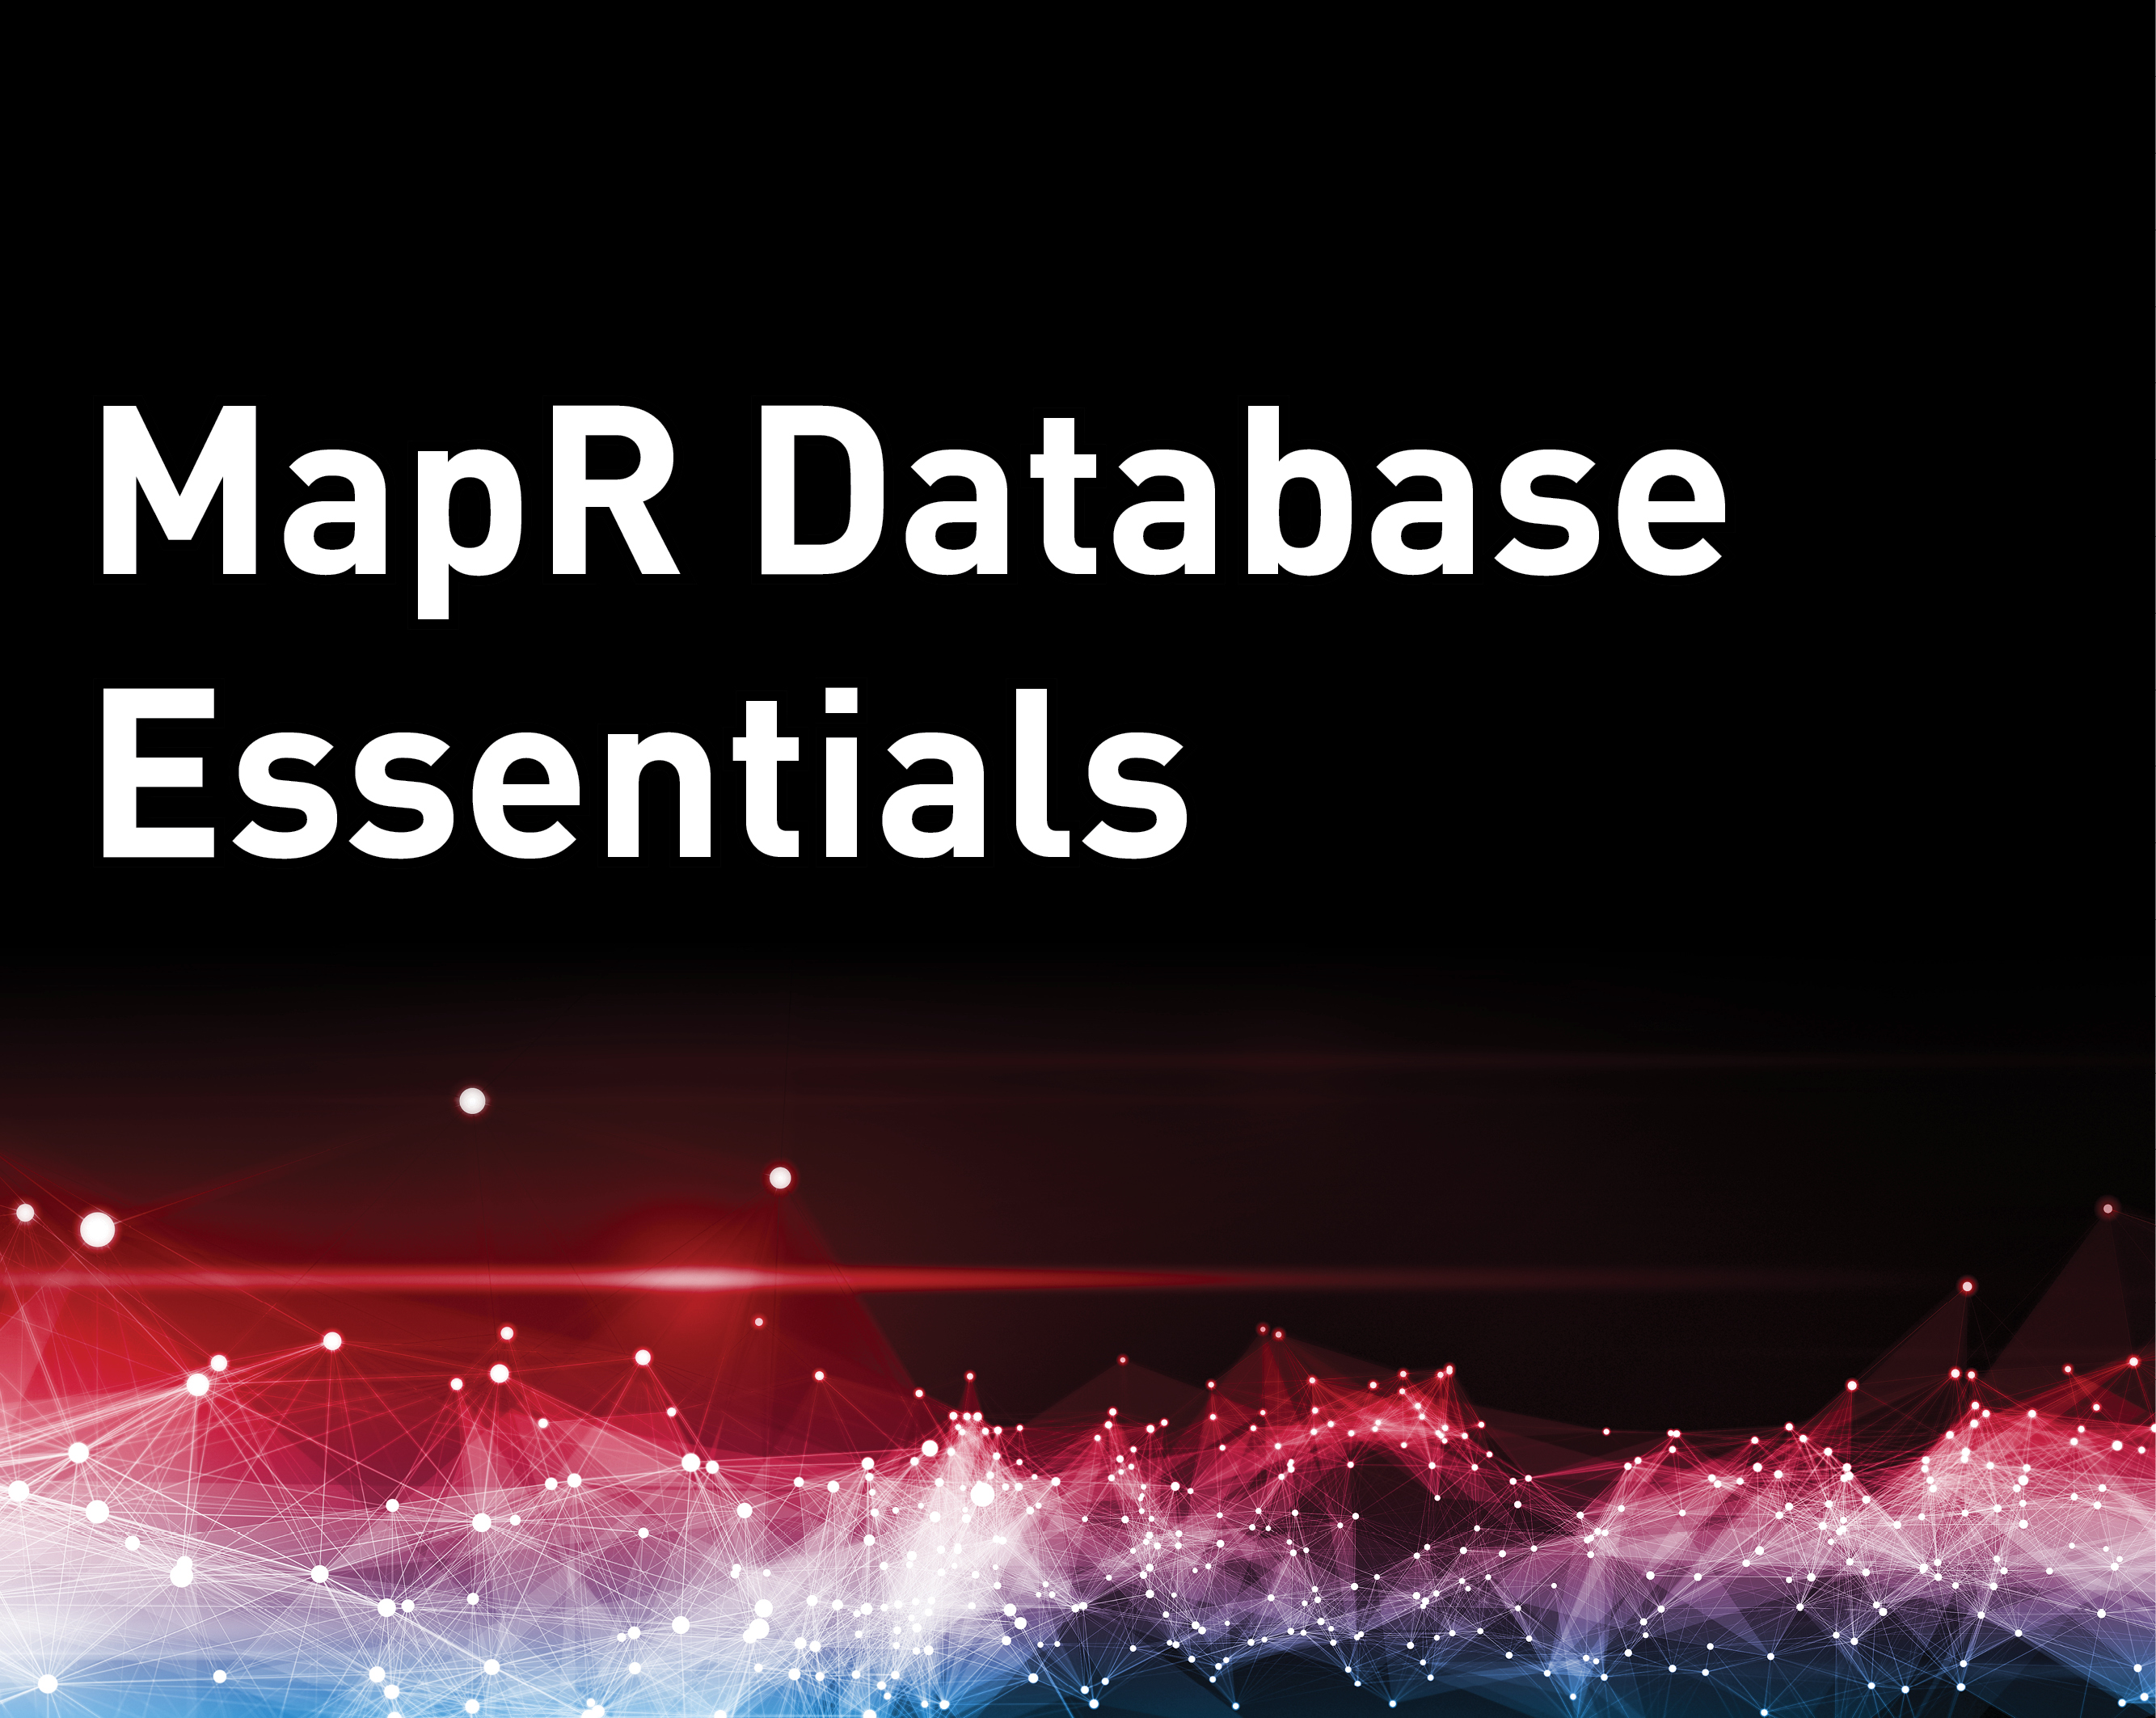 MapR Database Essentials